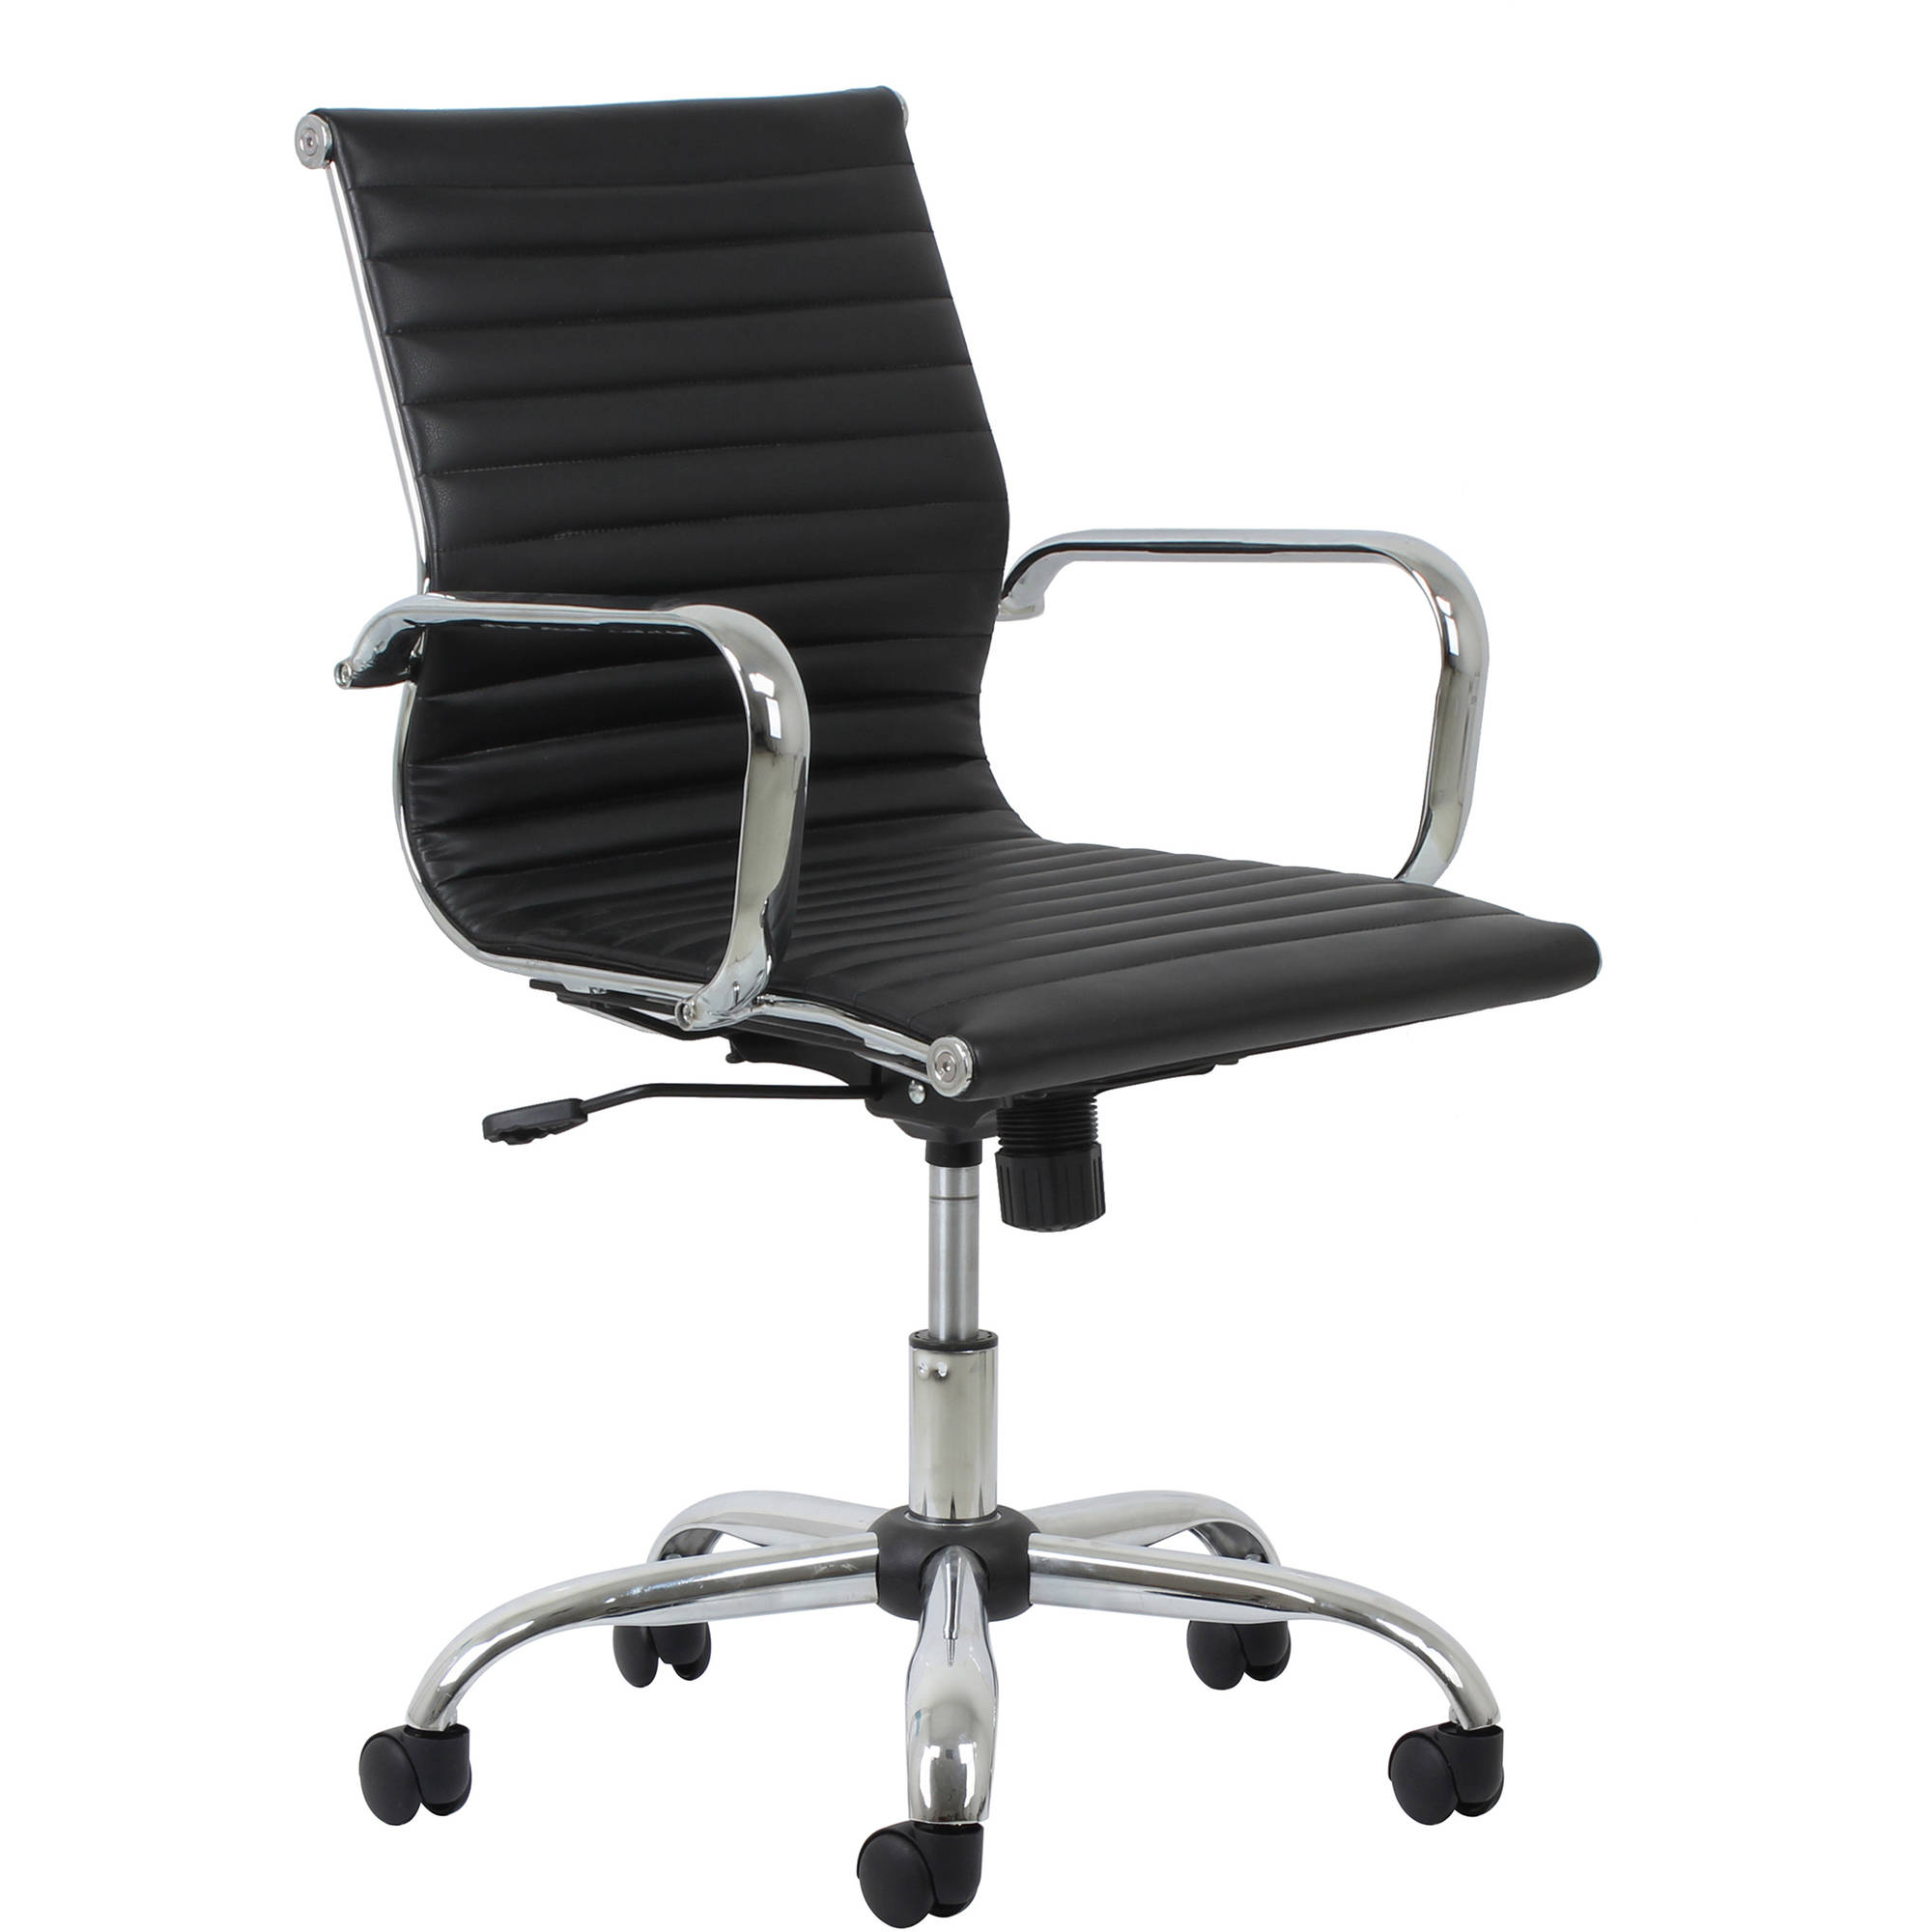 Essentials by OFM Swivel Ribbed Leather Executive Conference Chair with Arms, Black/Chrome